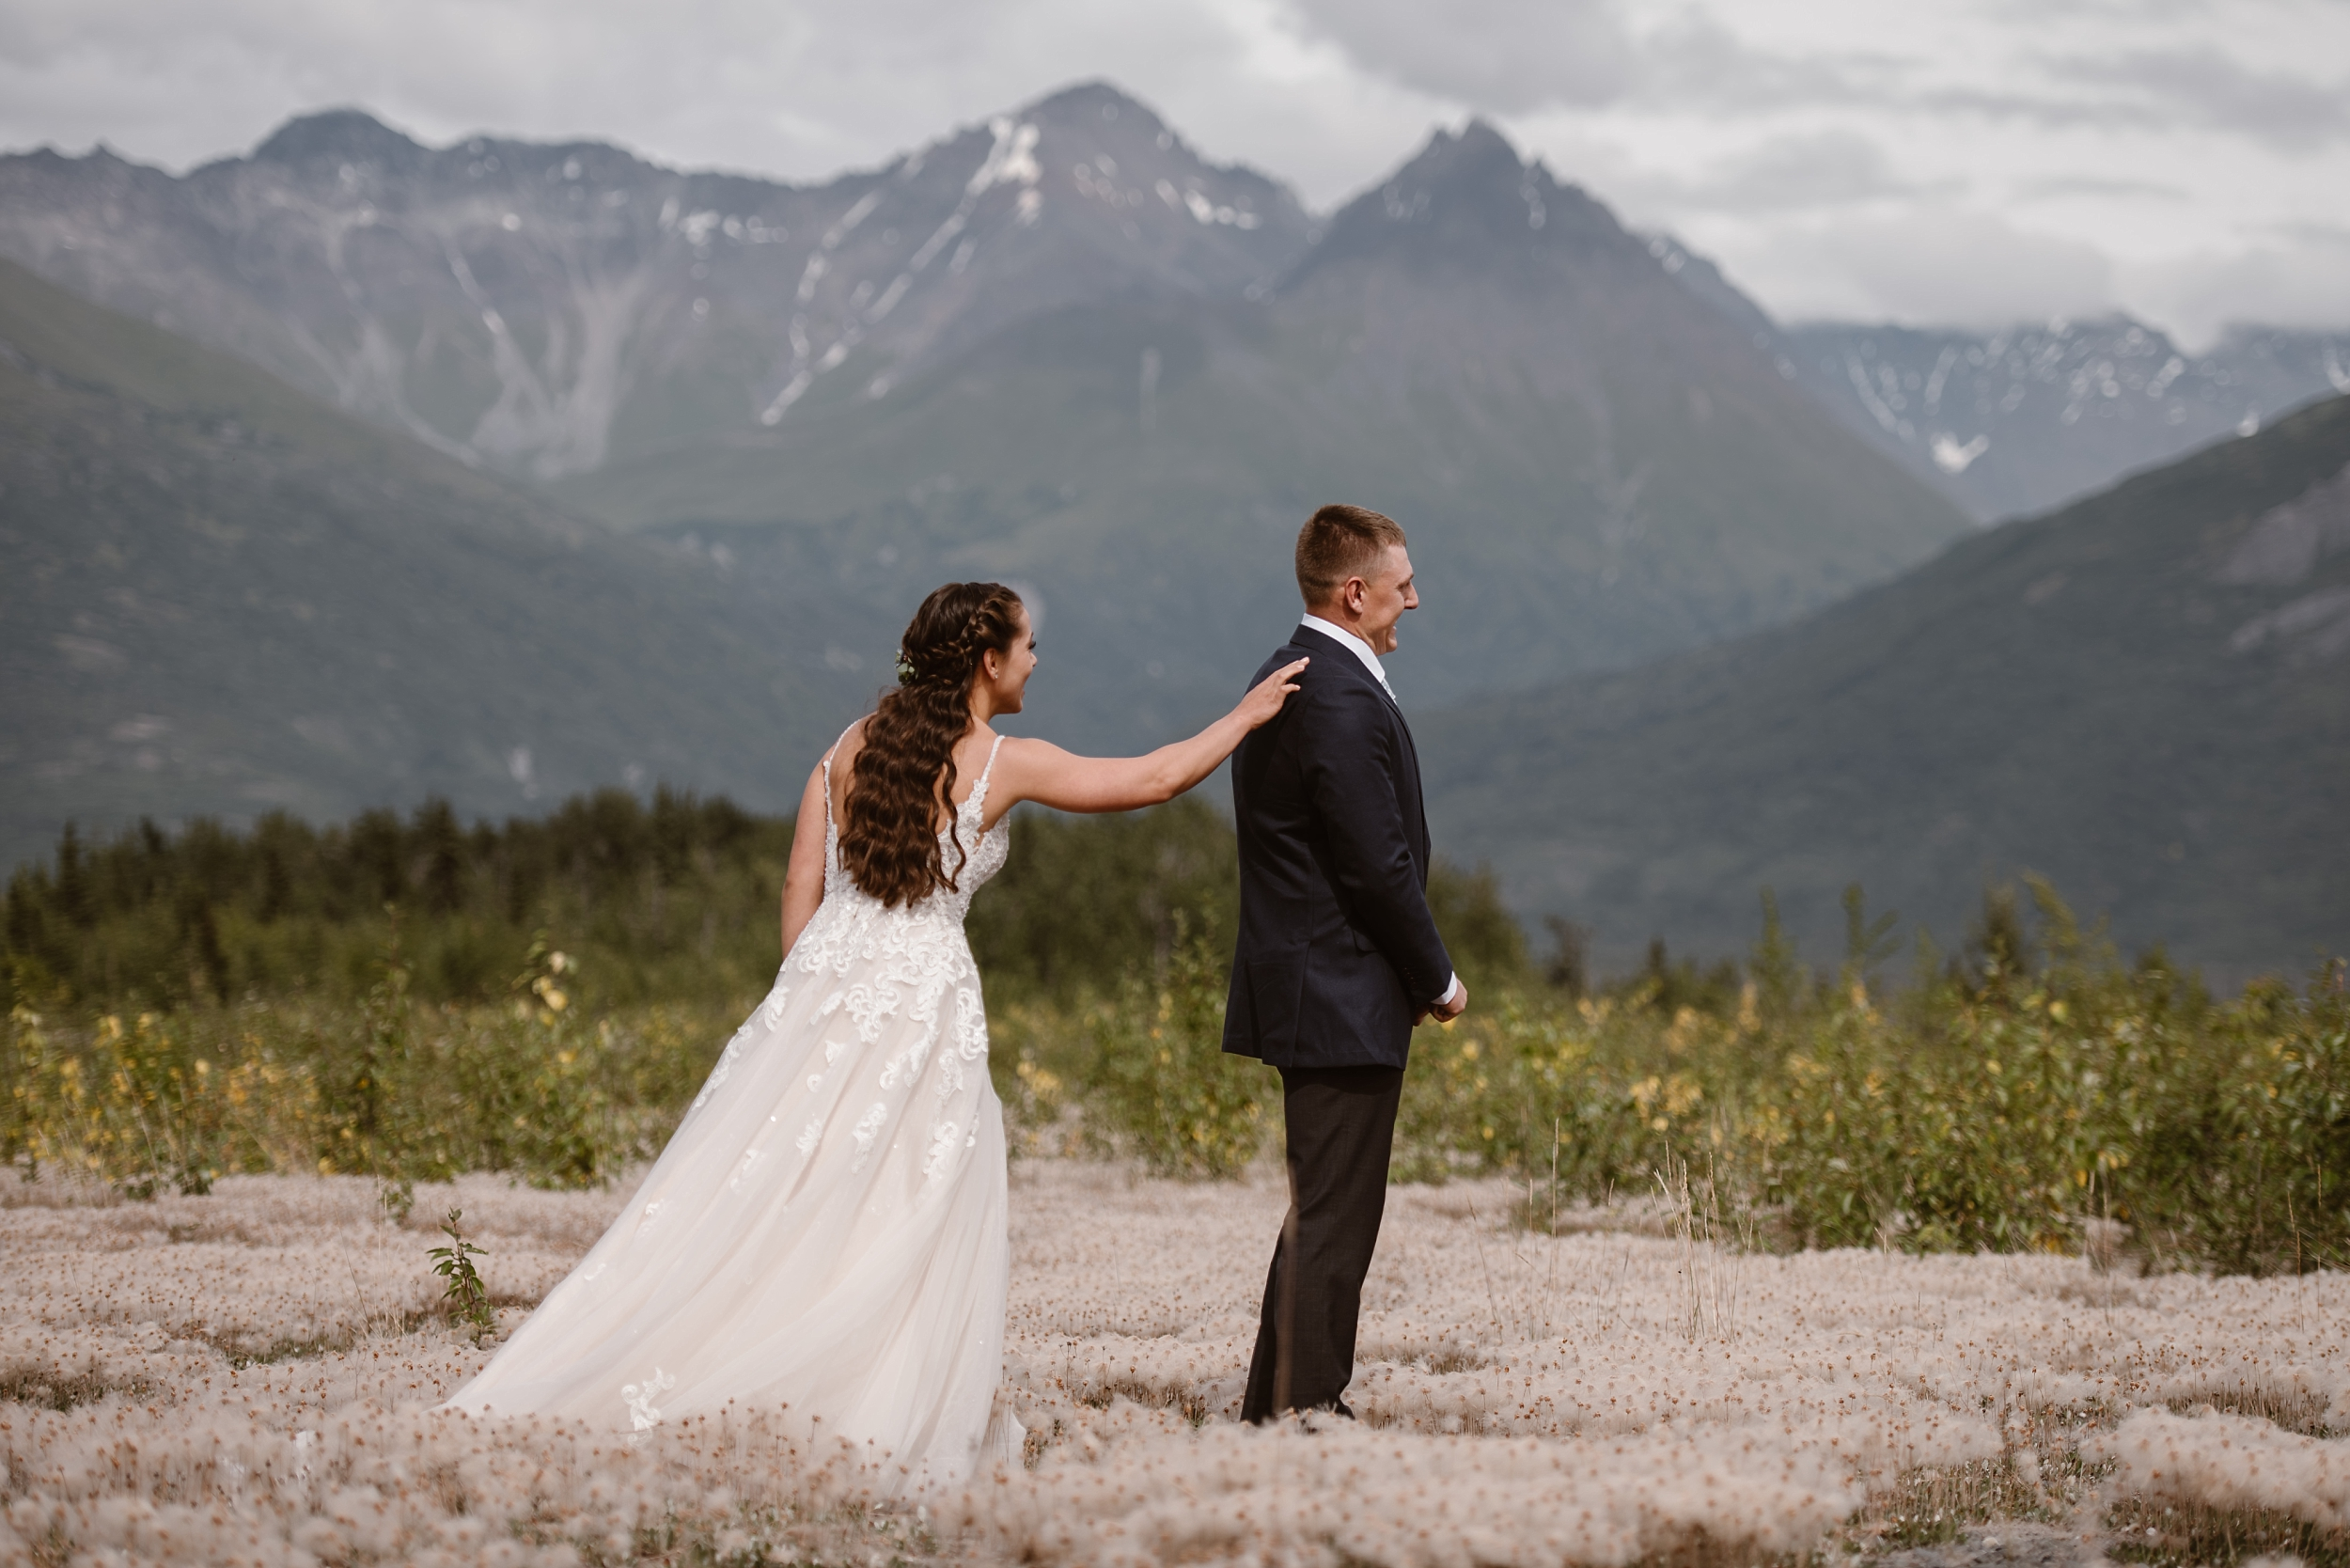 A first look is possible, even in Alaska destination elopement weddings. Jordyn reaches out toward Connor, who is looking away and waiting her go-ahead to see her in her wedding dress. The two stand among a field of flowers with dramatic Alaskan mountain peaks and lush foliage in the background.